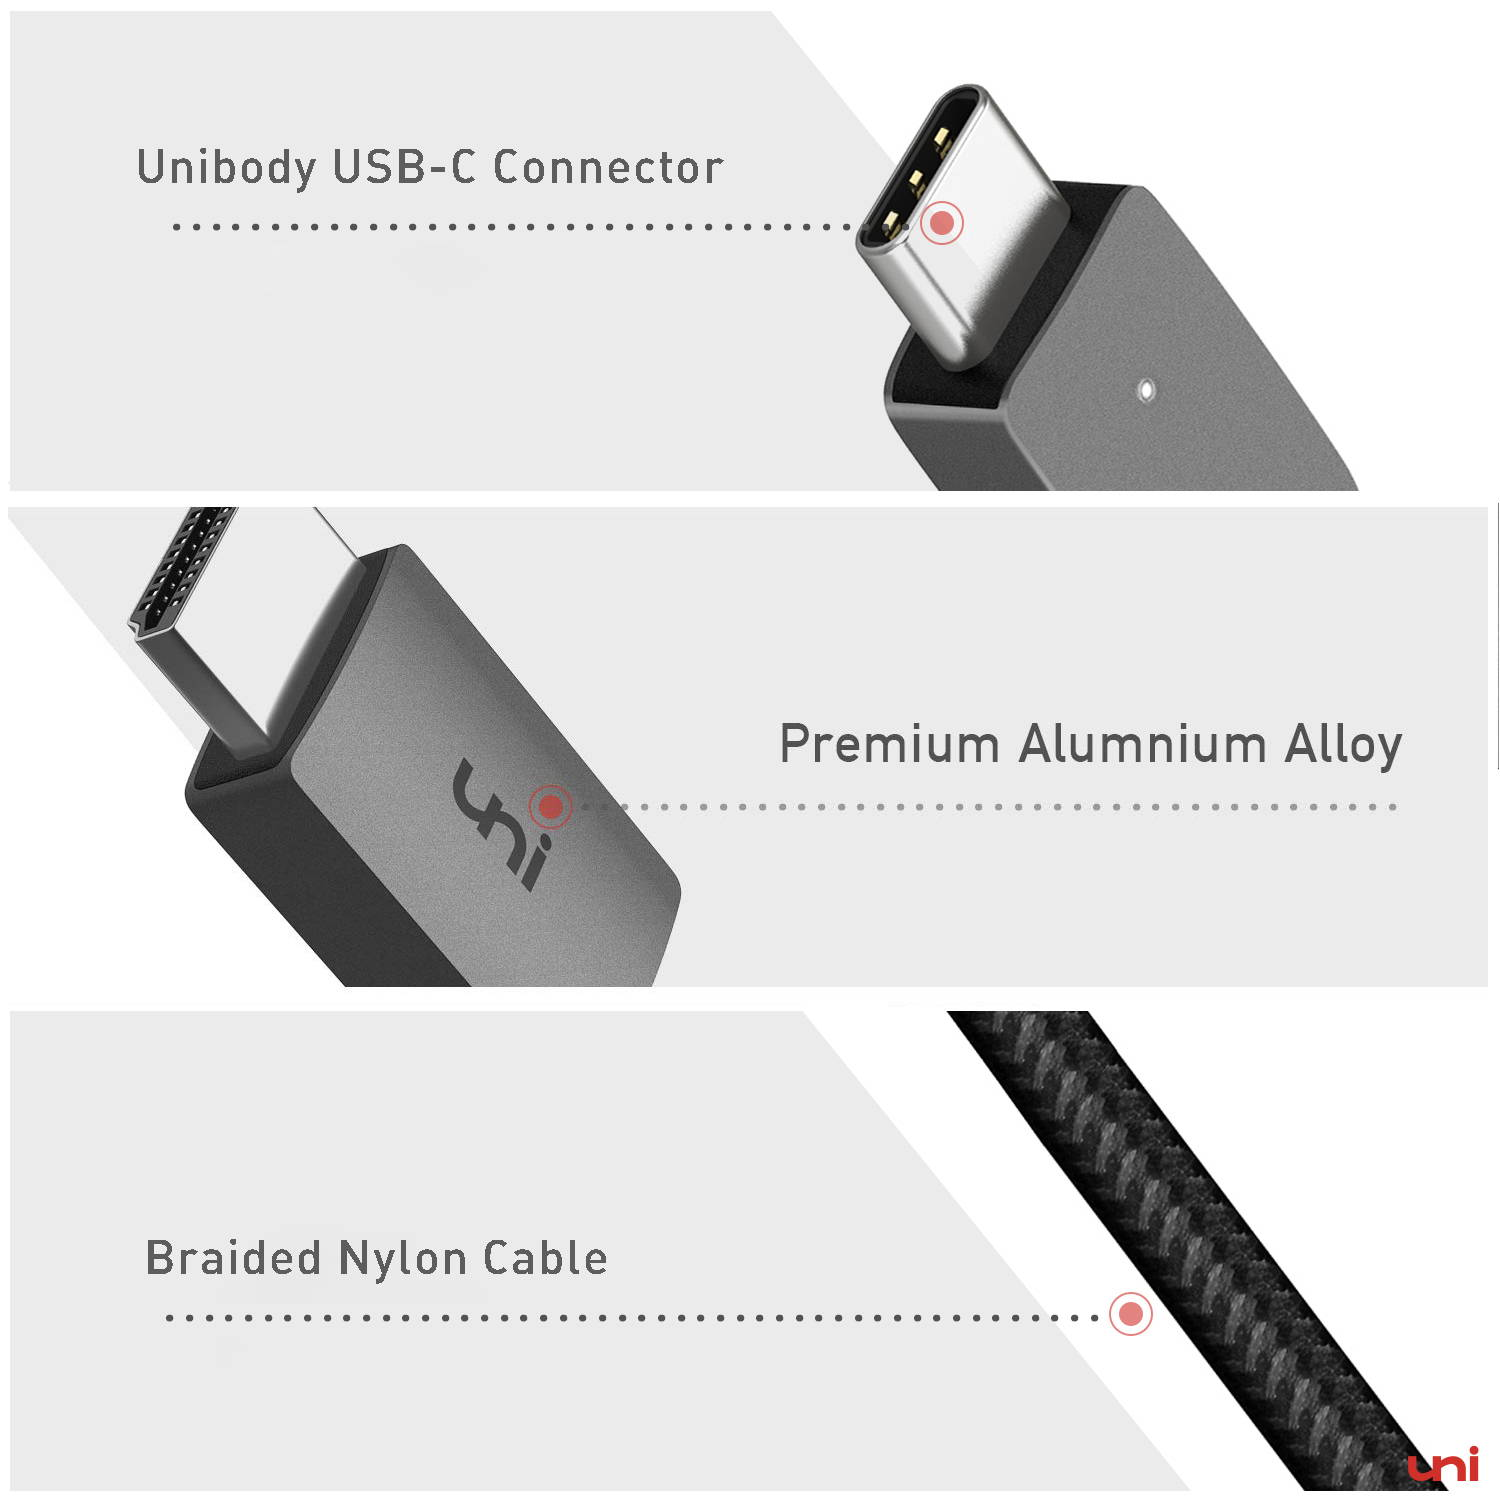 USB-C to HDMI Cable (4K@30Hz), 6ft, usb c to hdmi cable, usb type c to hdmi cable, hdmi cable type c